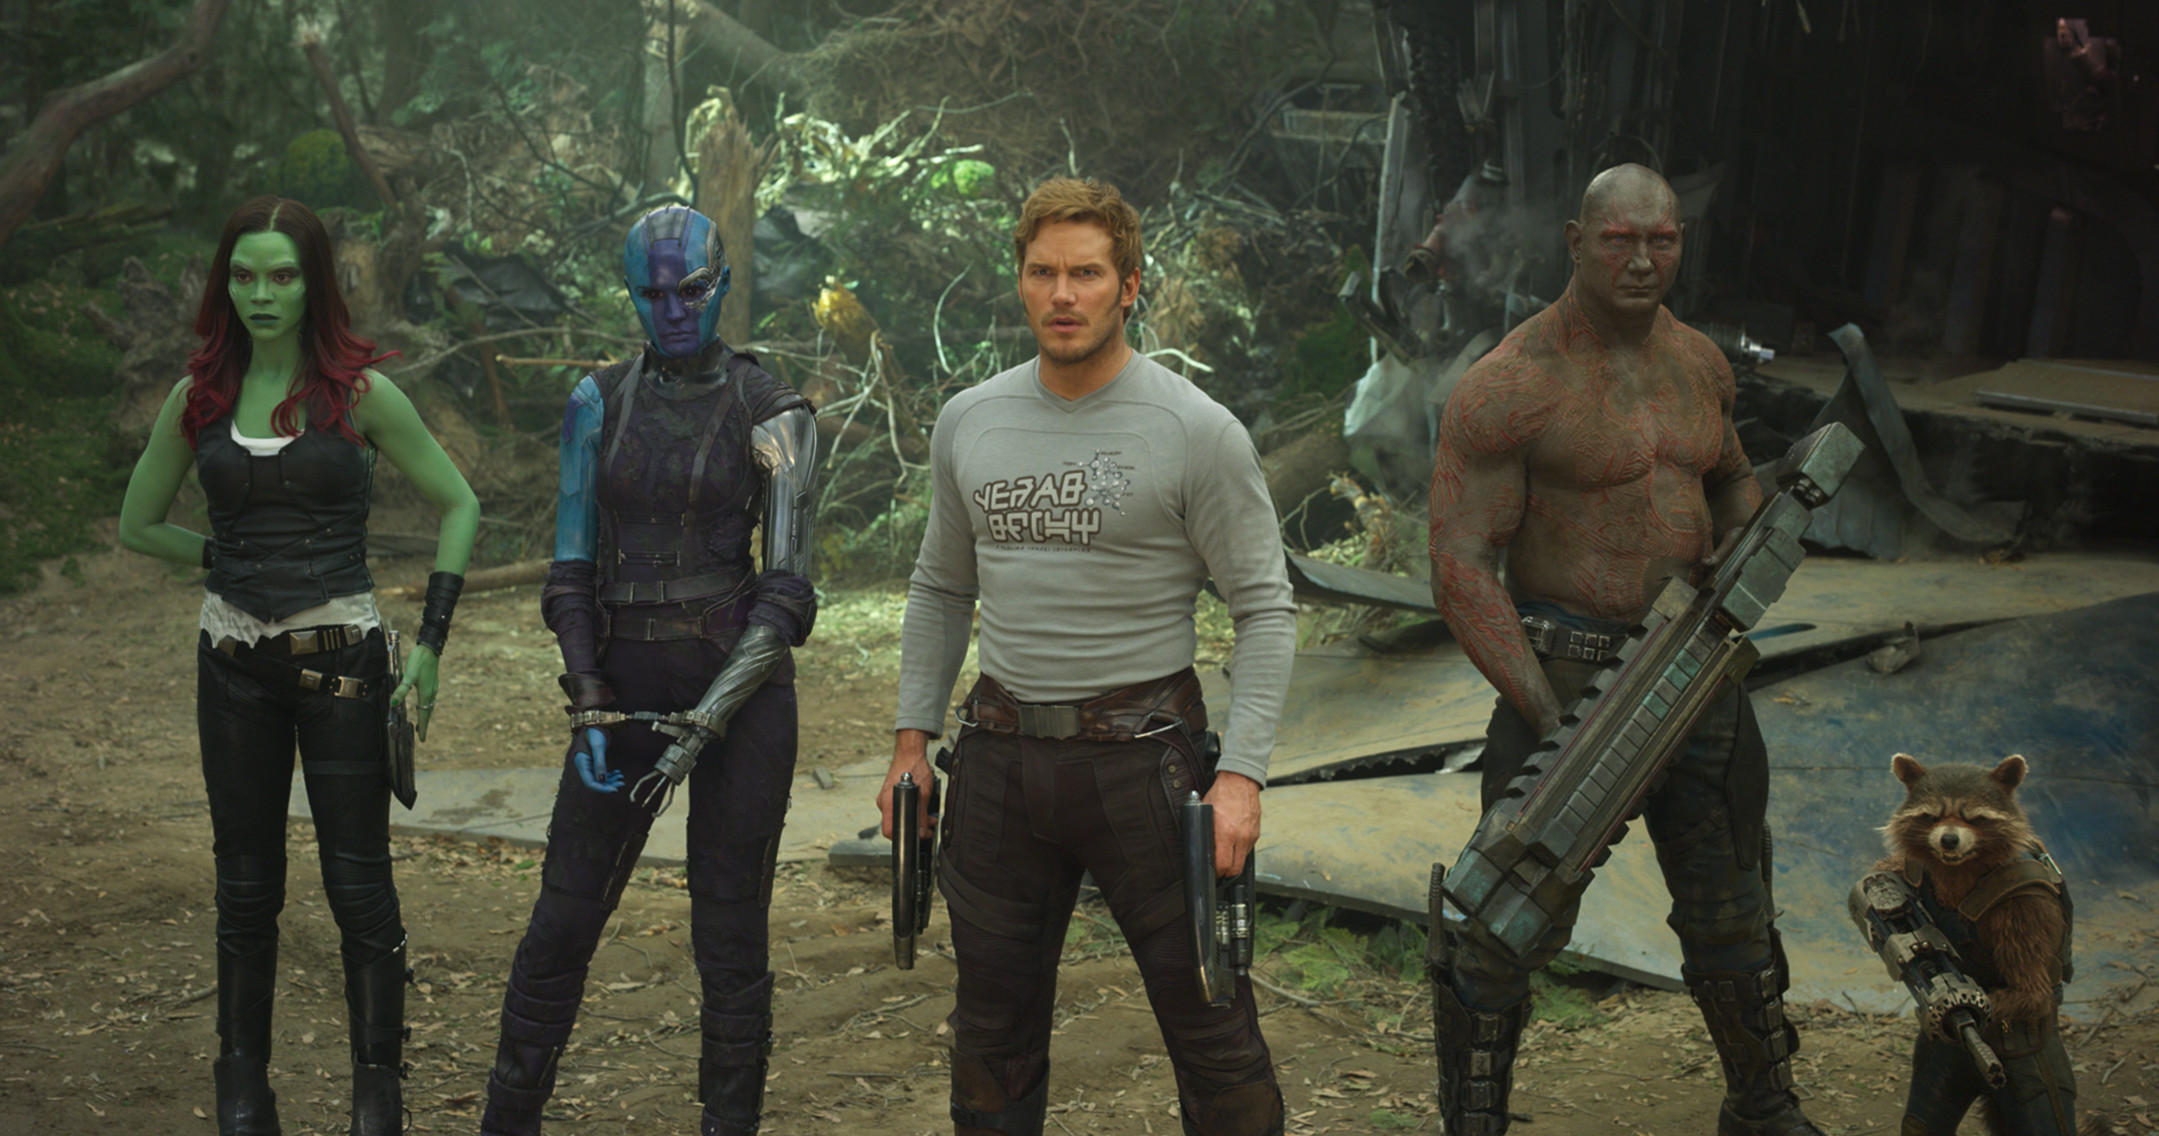 guardians-of-the-galaxy-vol-2-mrxcd7